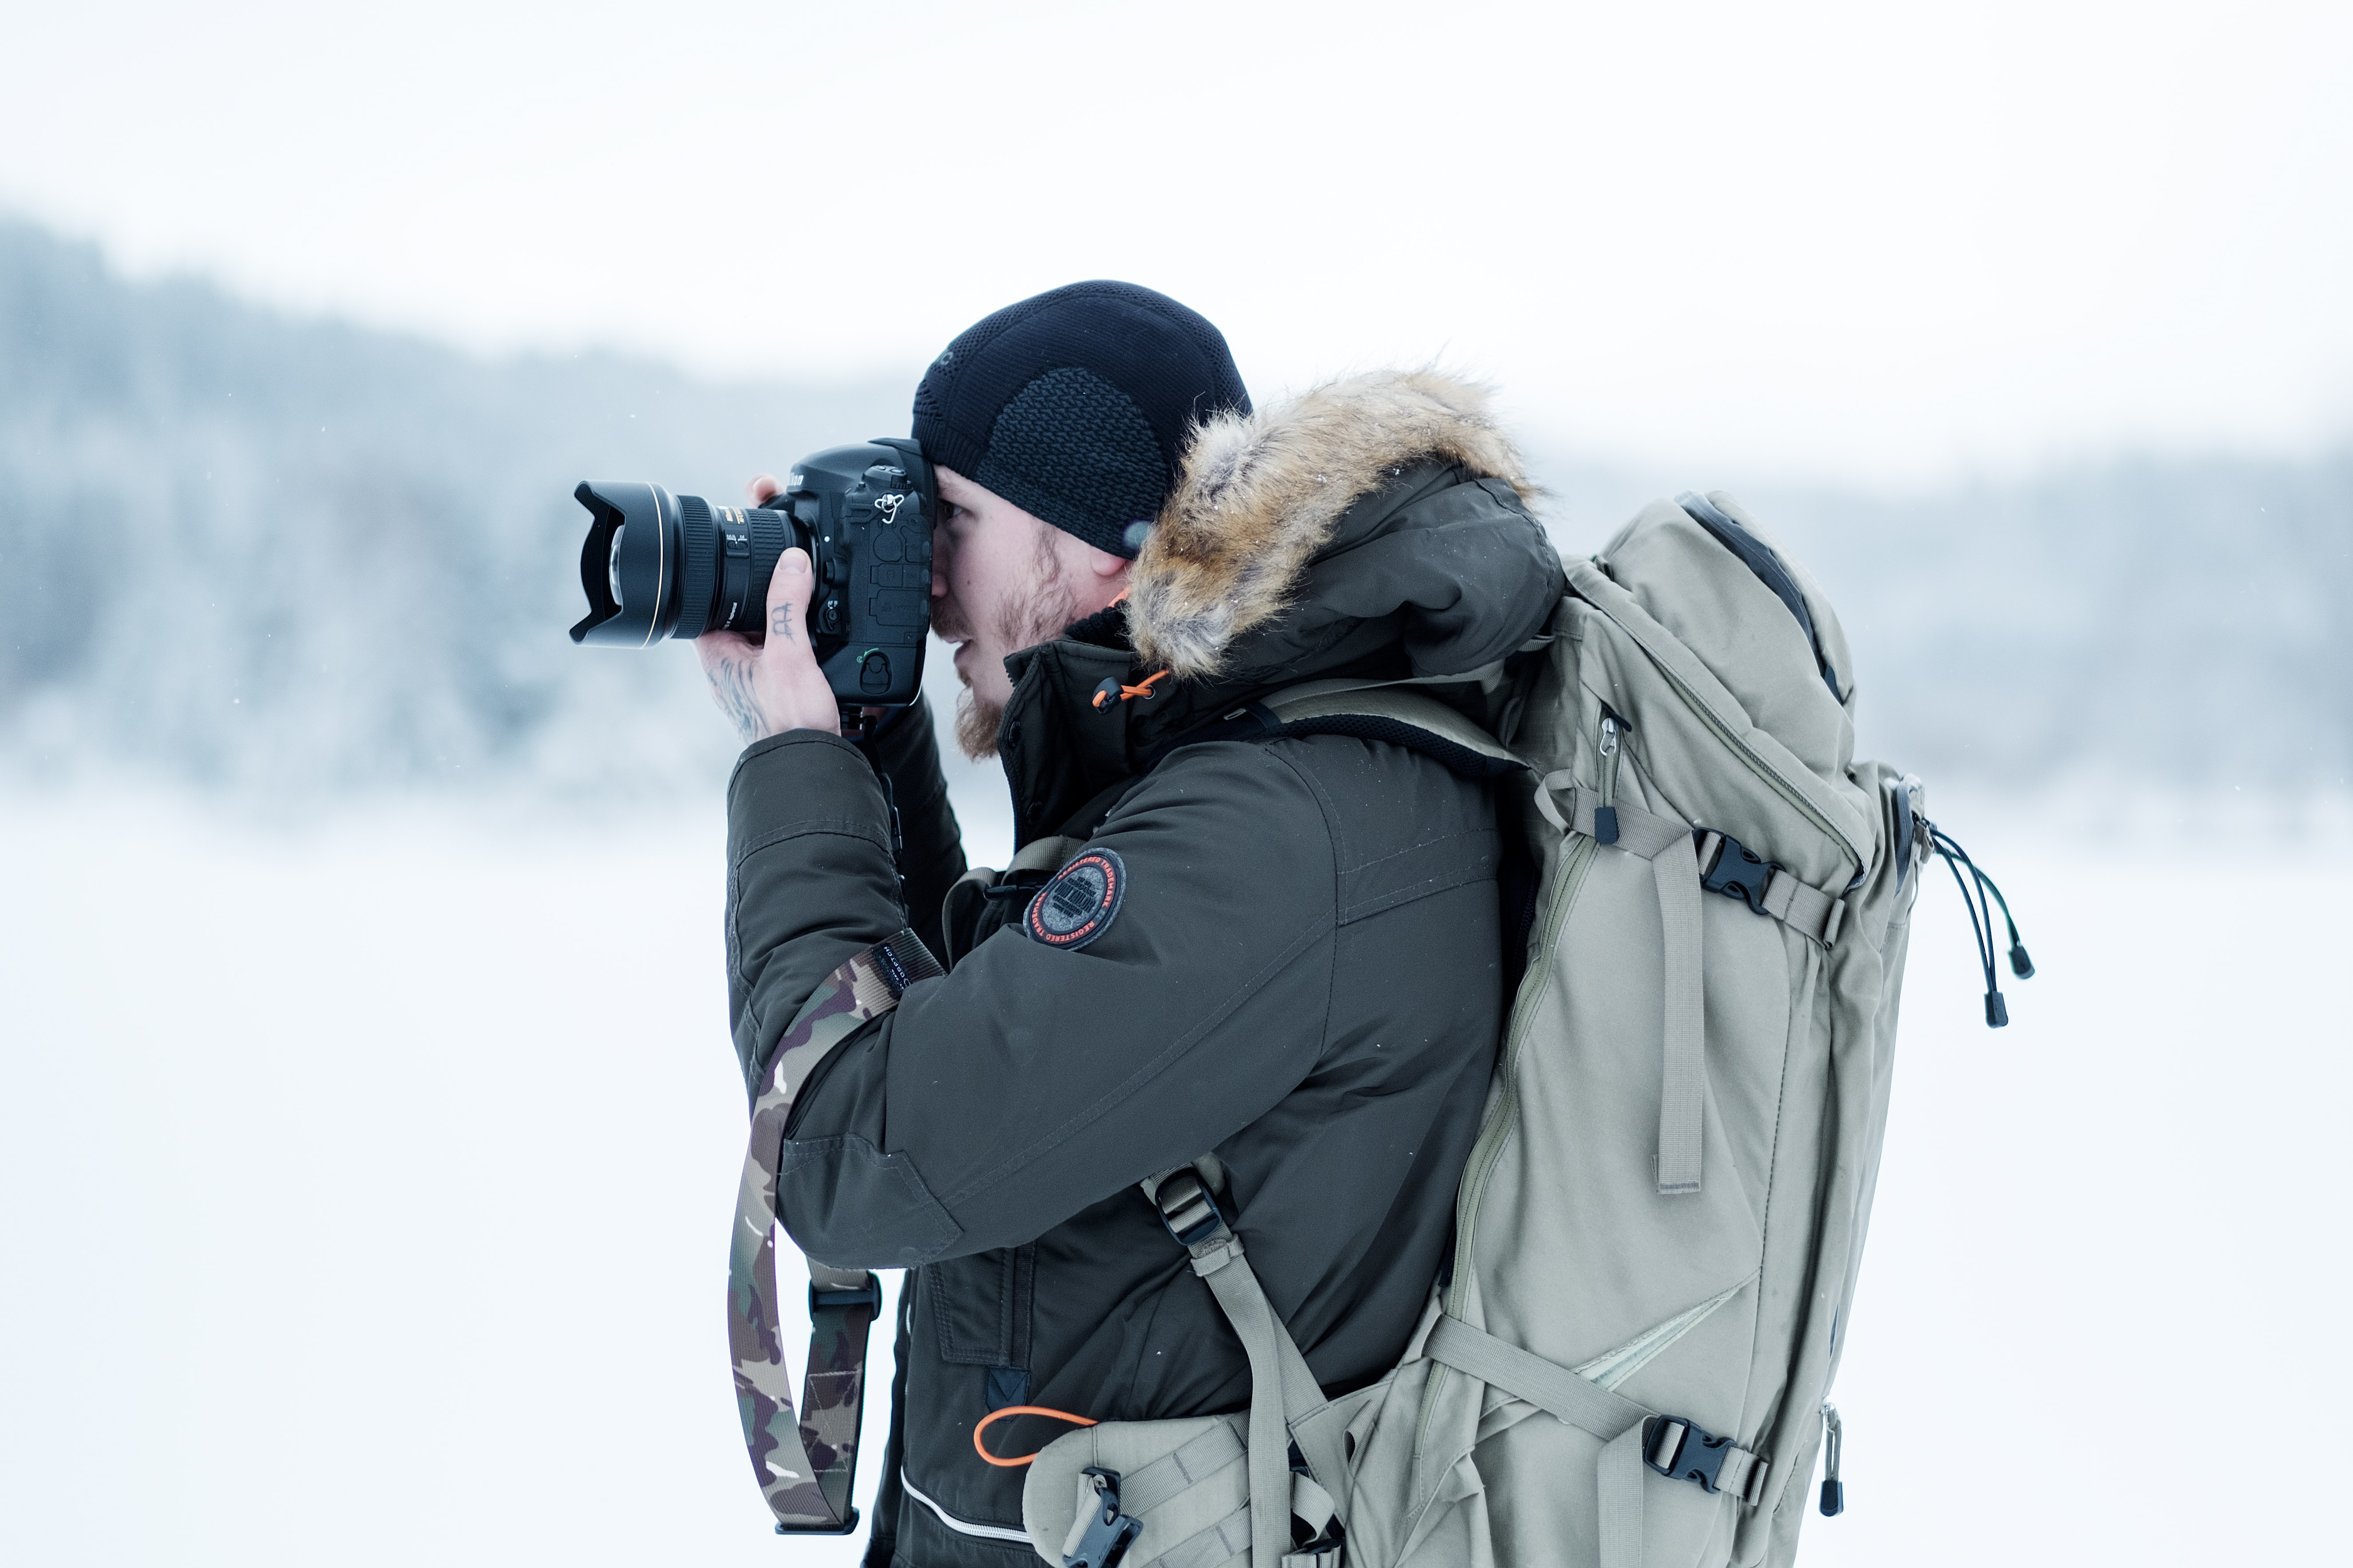 man standing on snow field while taking photo